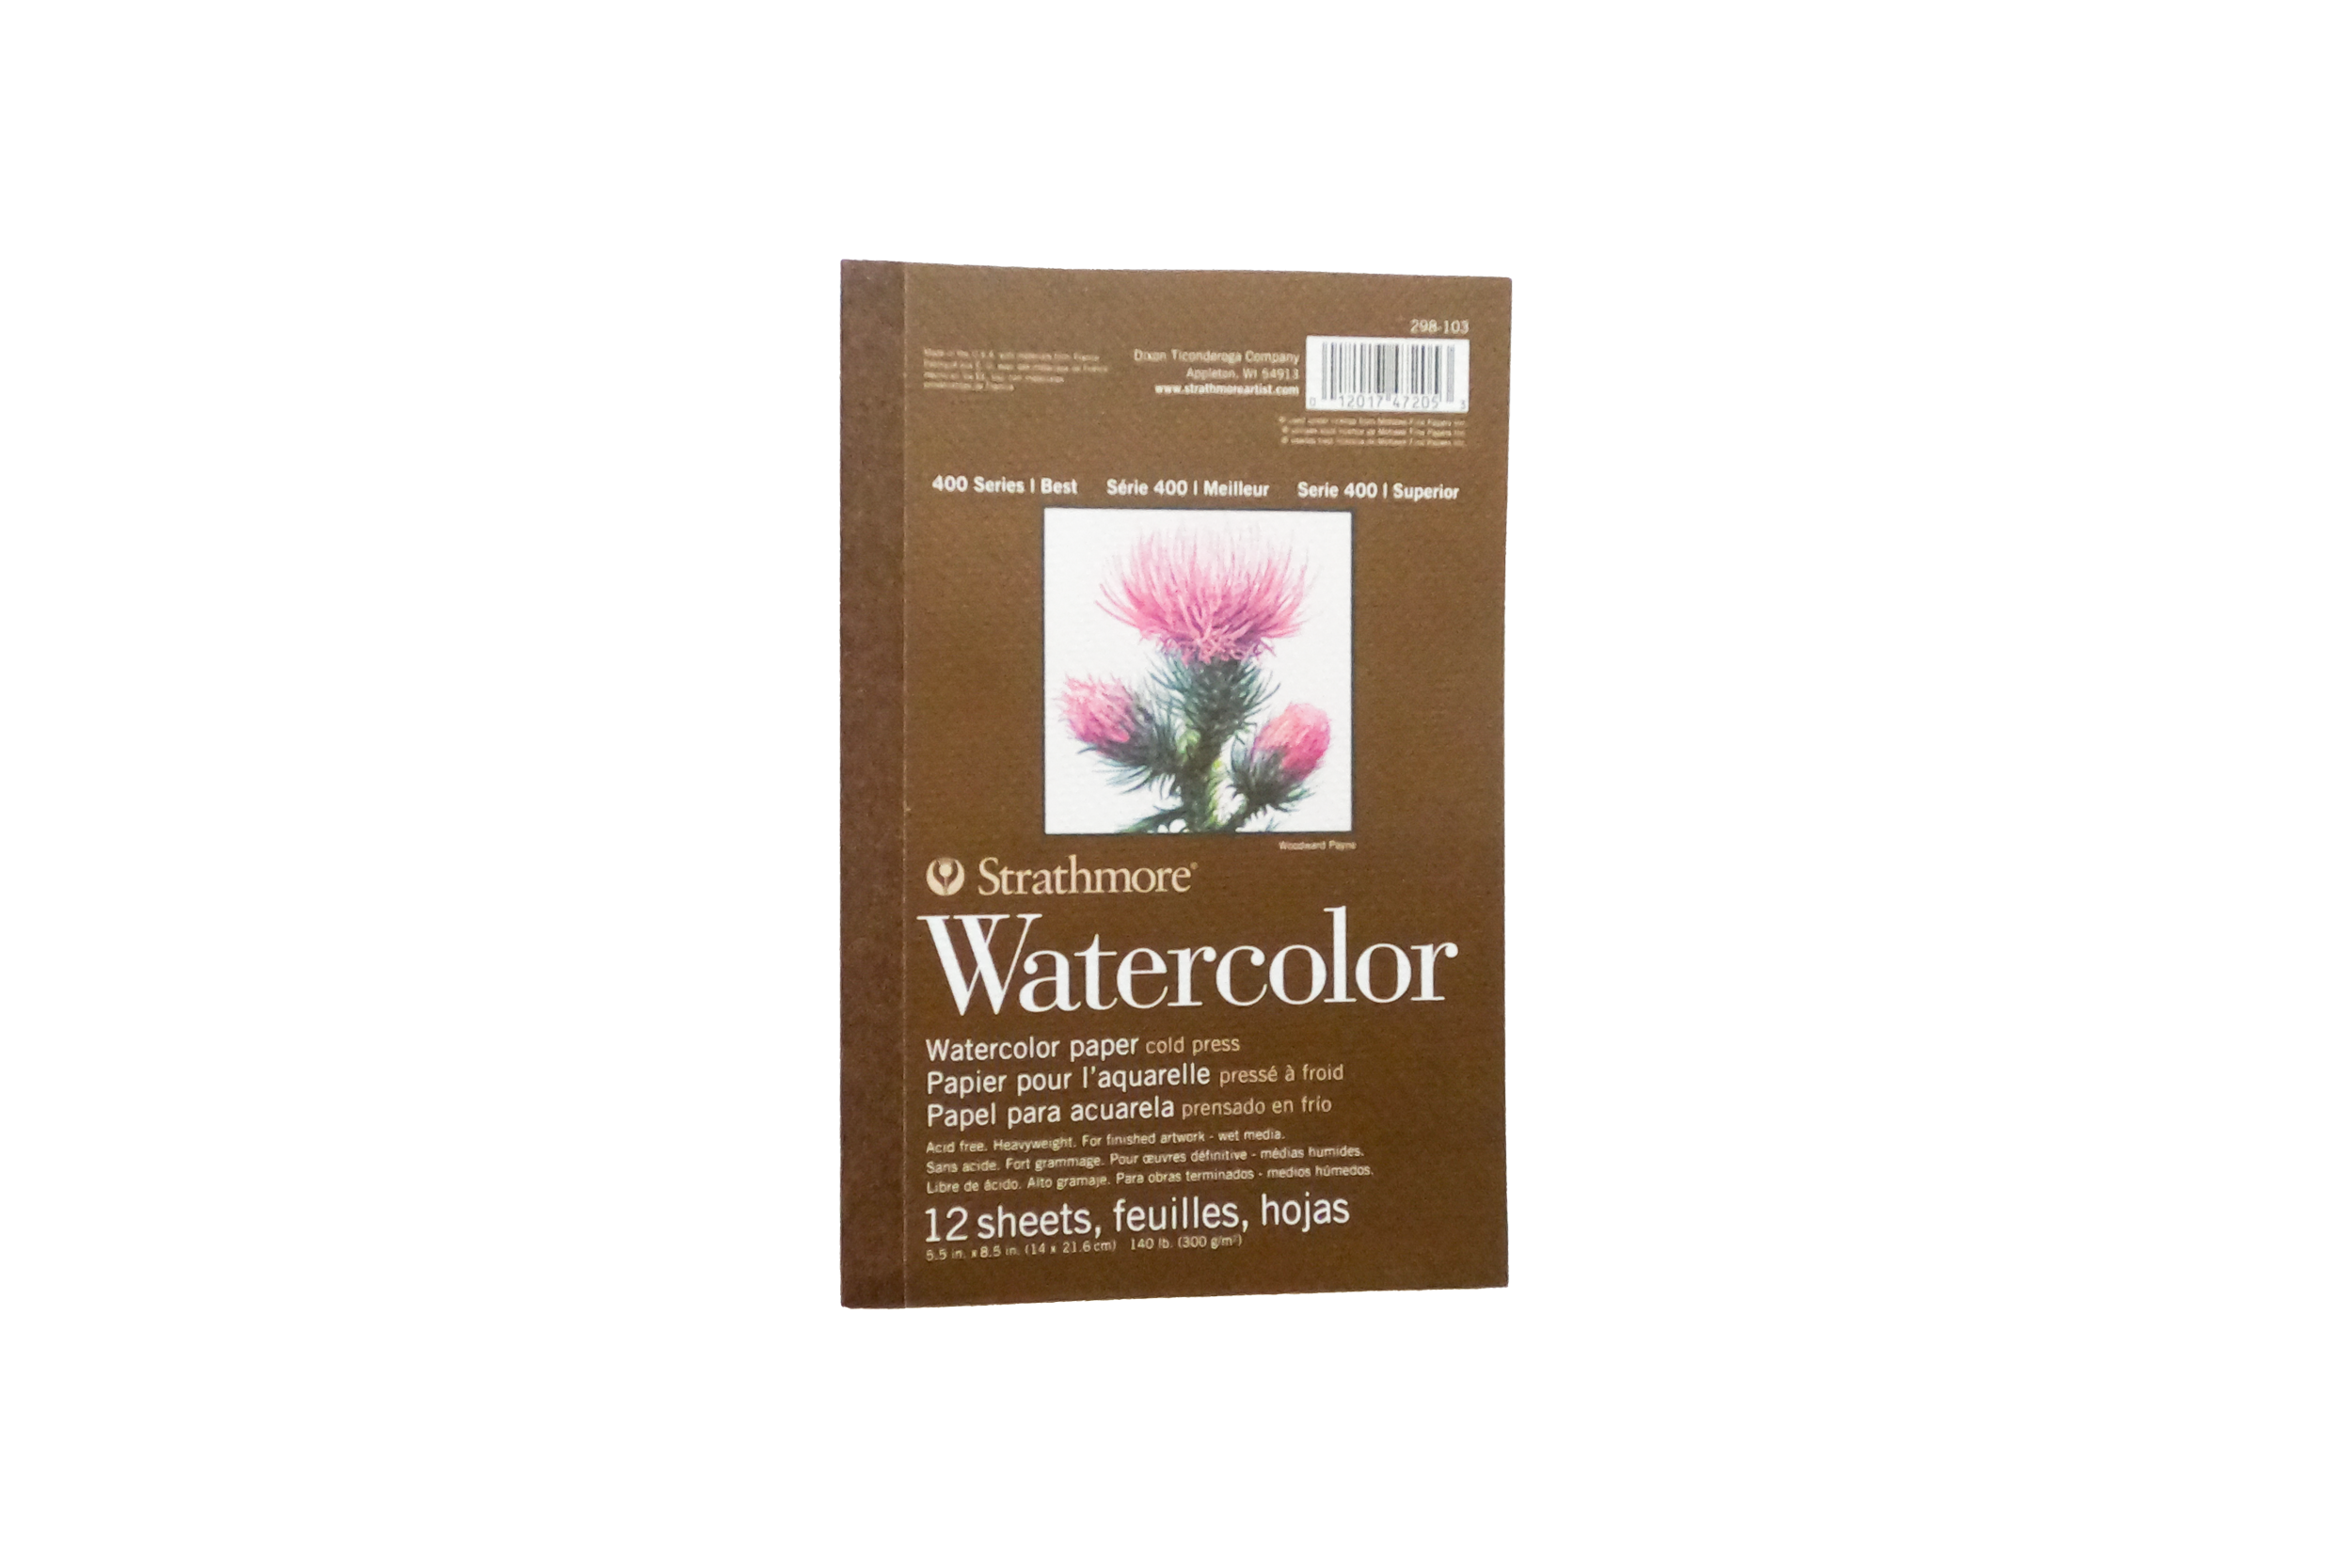 """STRATHMORE WATERCOLOR 400 SERIES,  TAPE-BOUND PAD 5.5"""" X 8.5"""""""